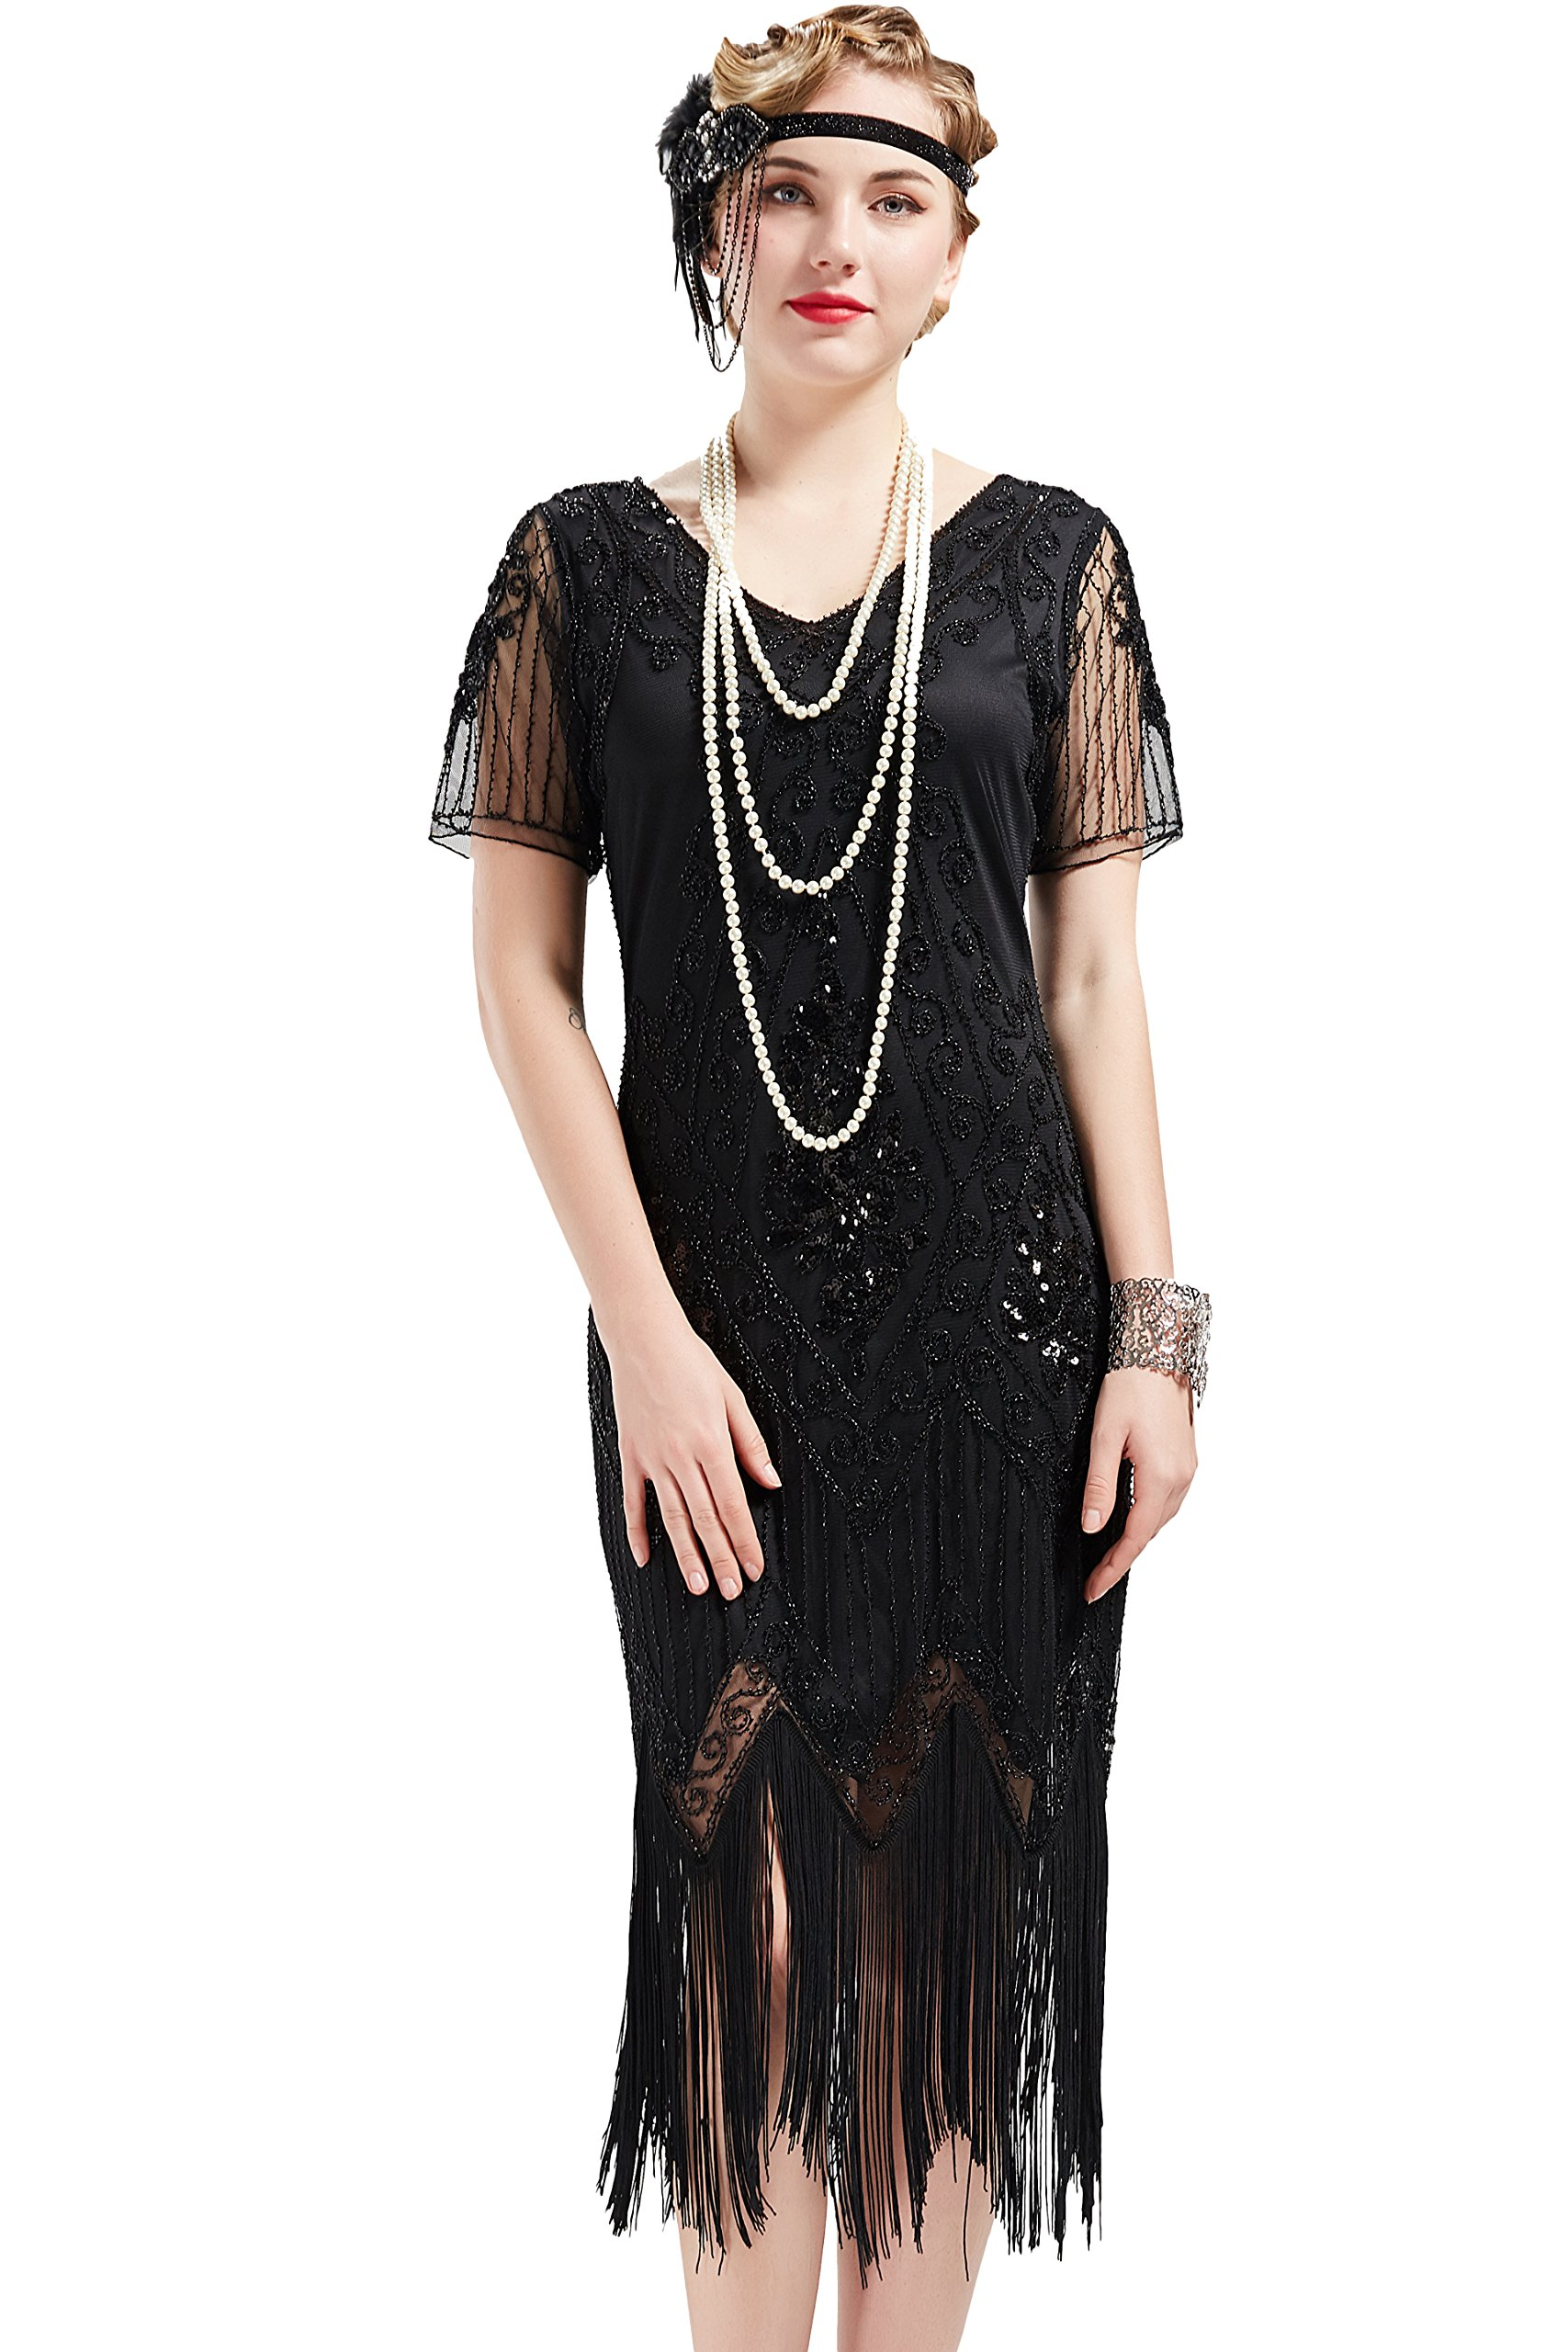 6636e08fcce BABEYOND 1920s Art Deco Fringed Sequin Dress 20s Flapper Gatsby Costume  Dress product image